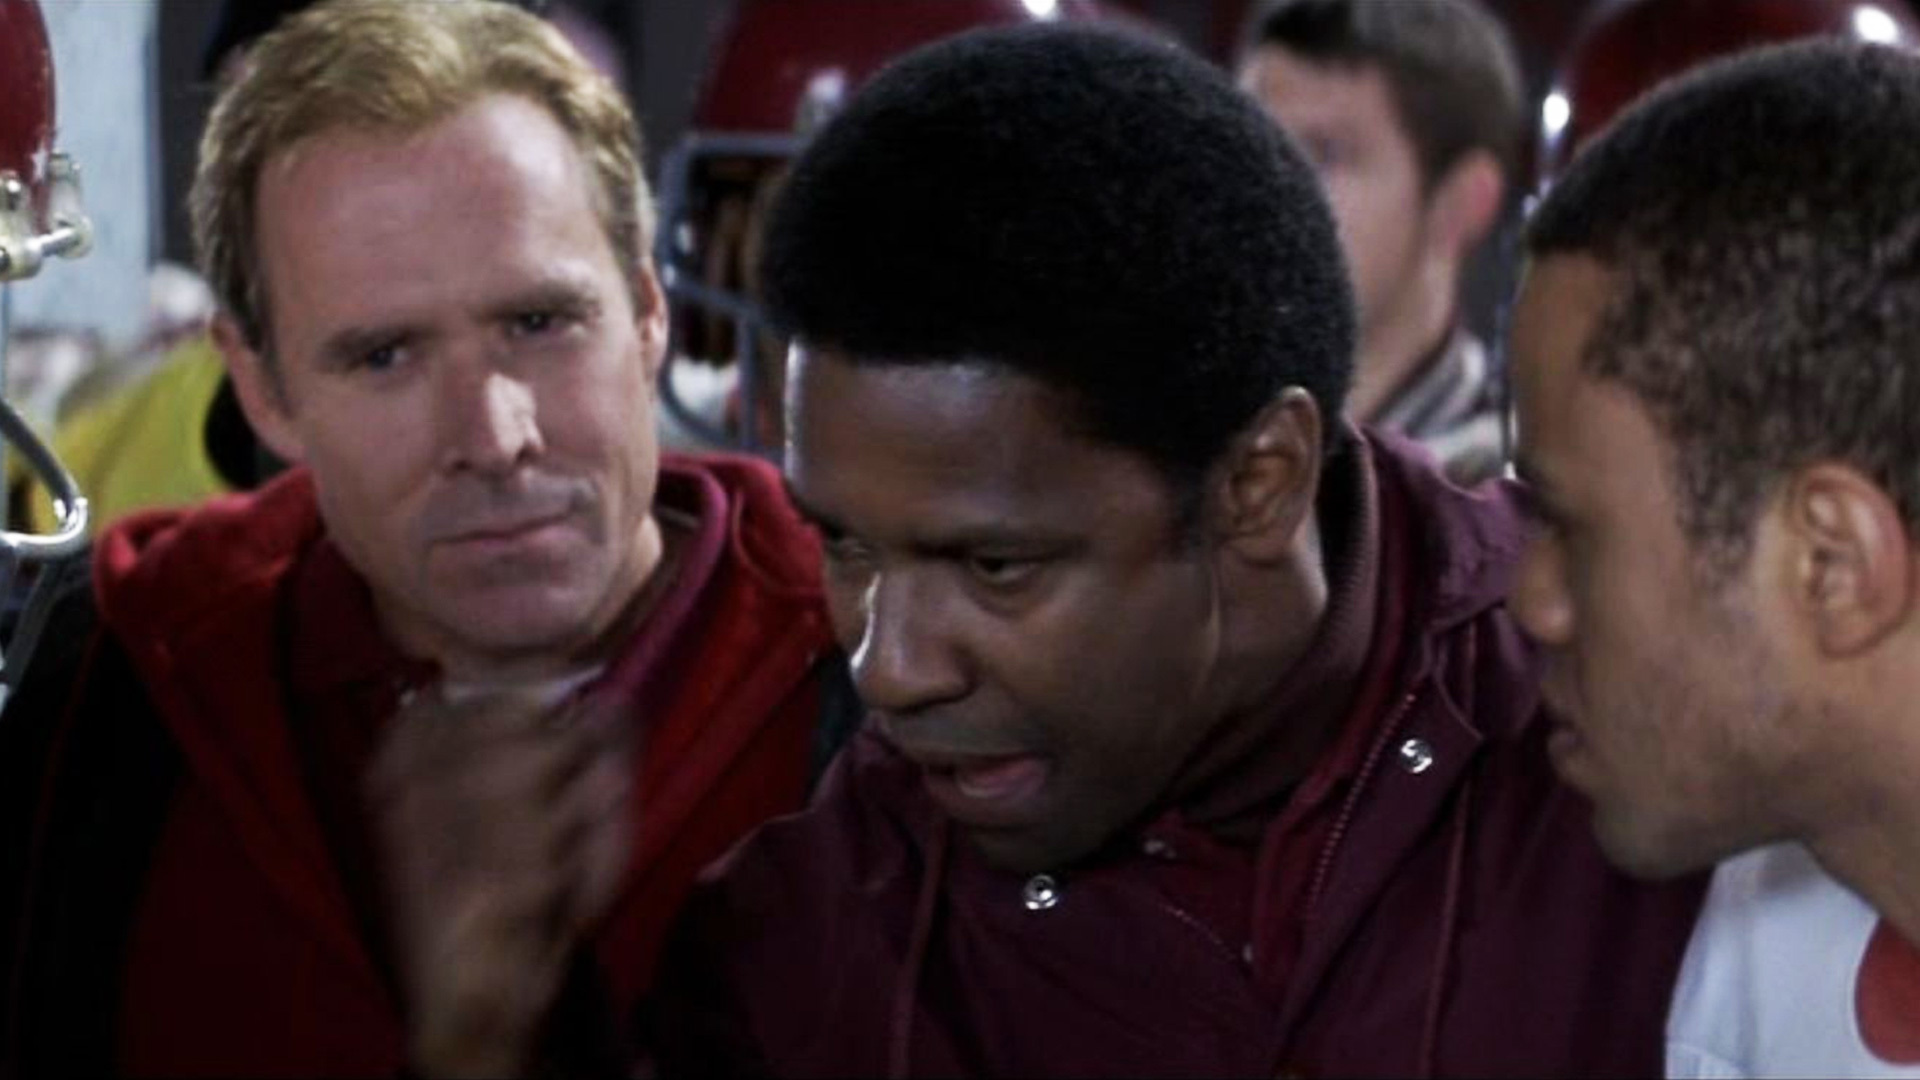 the movie remember the titans brings up the issue of racism in sports Remember the titans and the civil rights movement this brings up one of the documents that i discussed in an earlier blog up to this point in the movie.